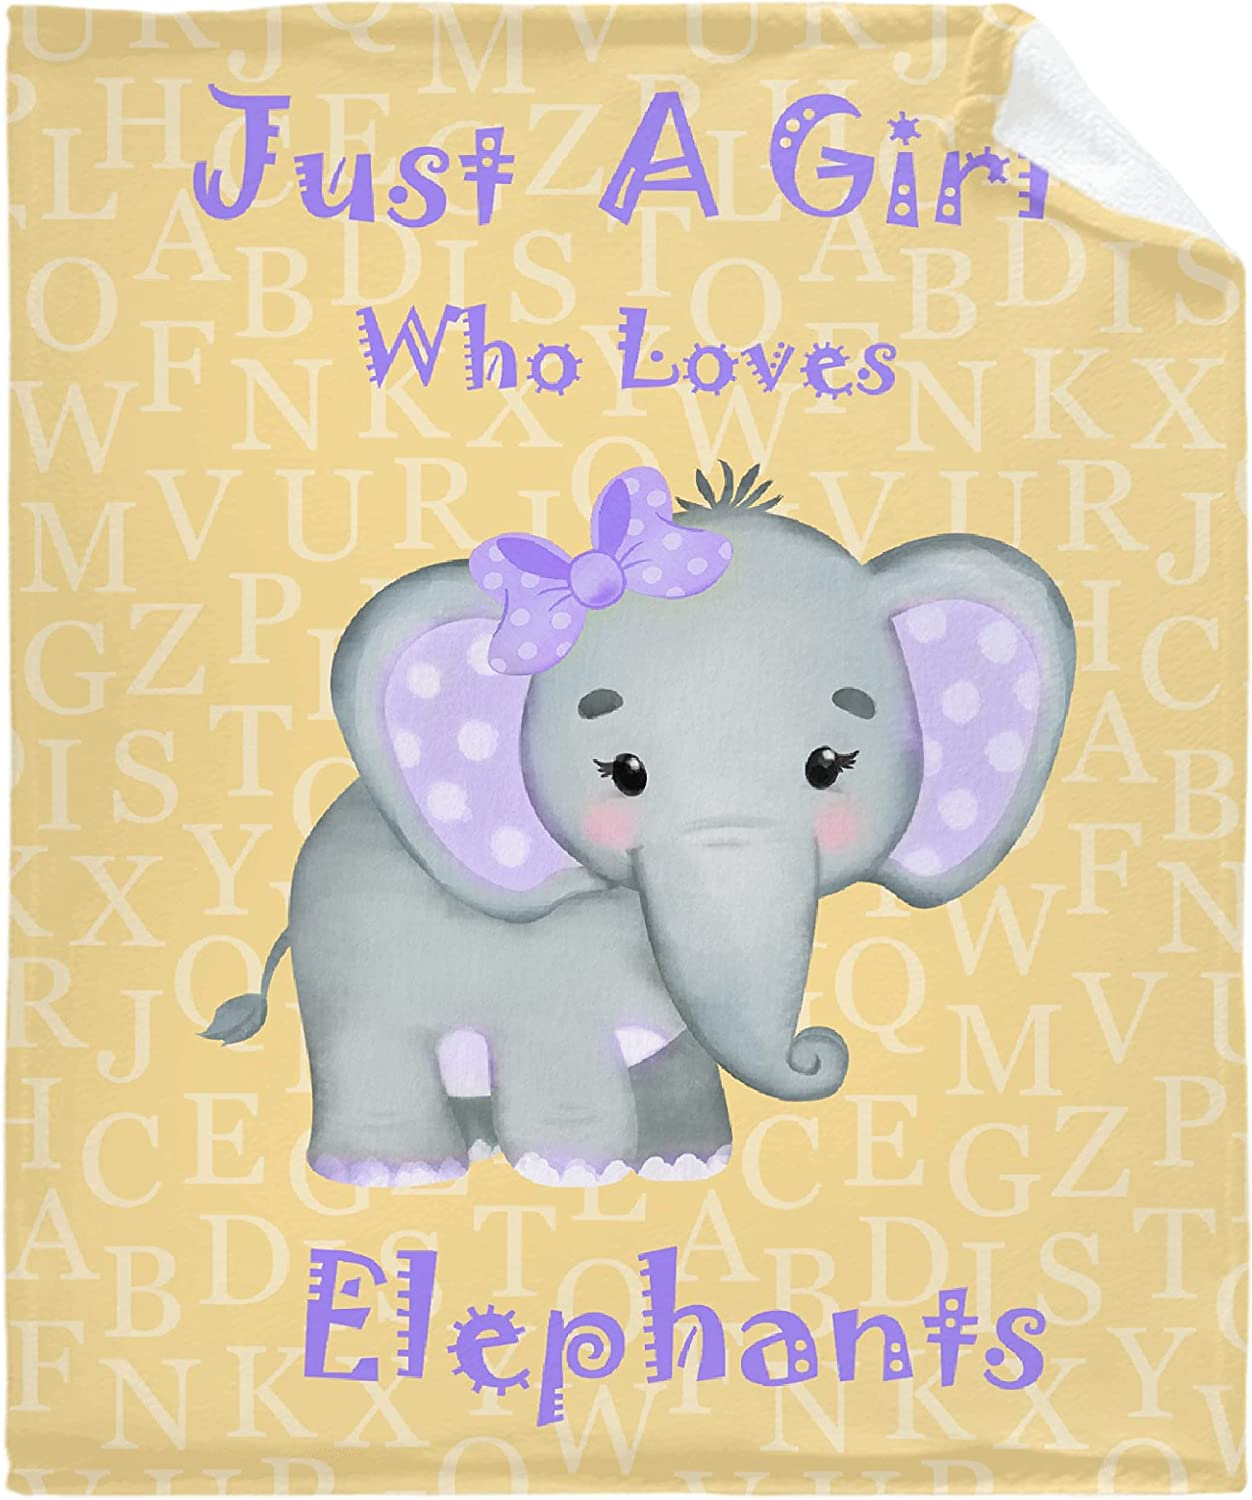 Just A service Girl Luxury Who Loves Elephants Lightw Yellow Blanket Soft Throw